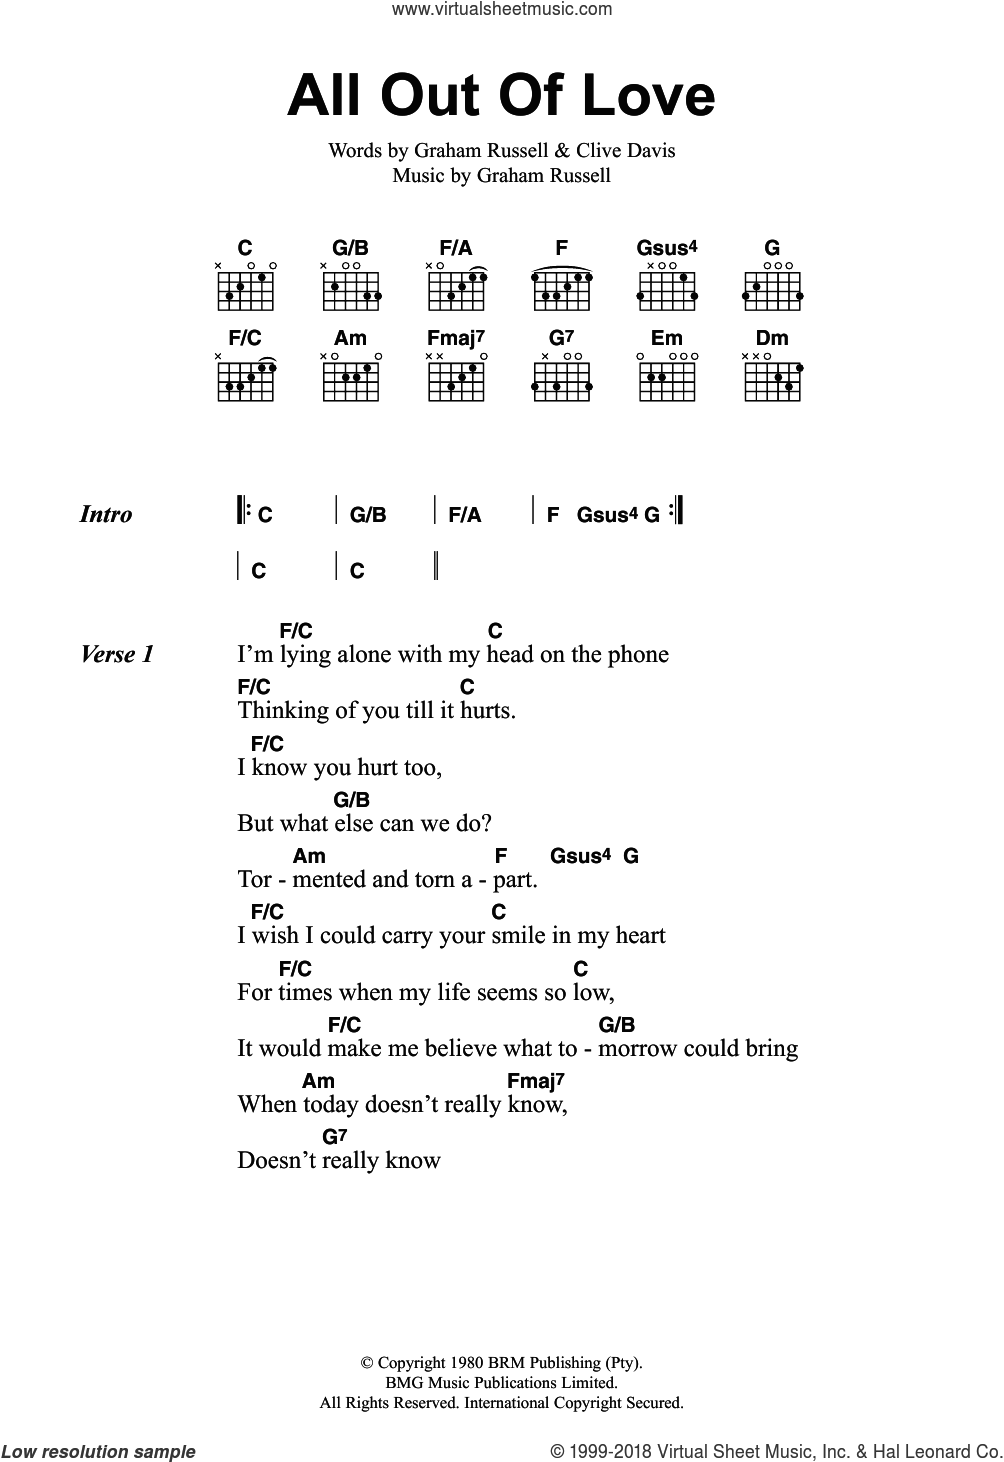 All Out Of Love sheet music for guitar (chords) by Air Supply, Clive Davis and Graham Russell, intermediate